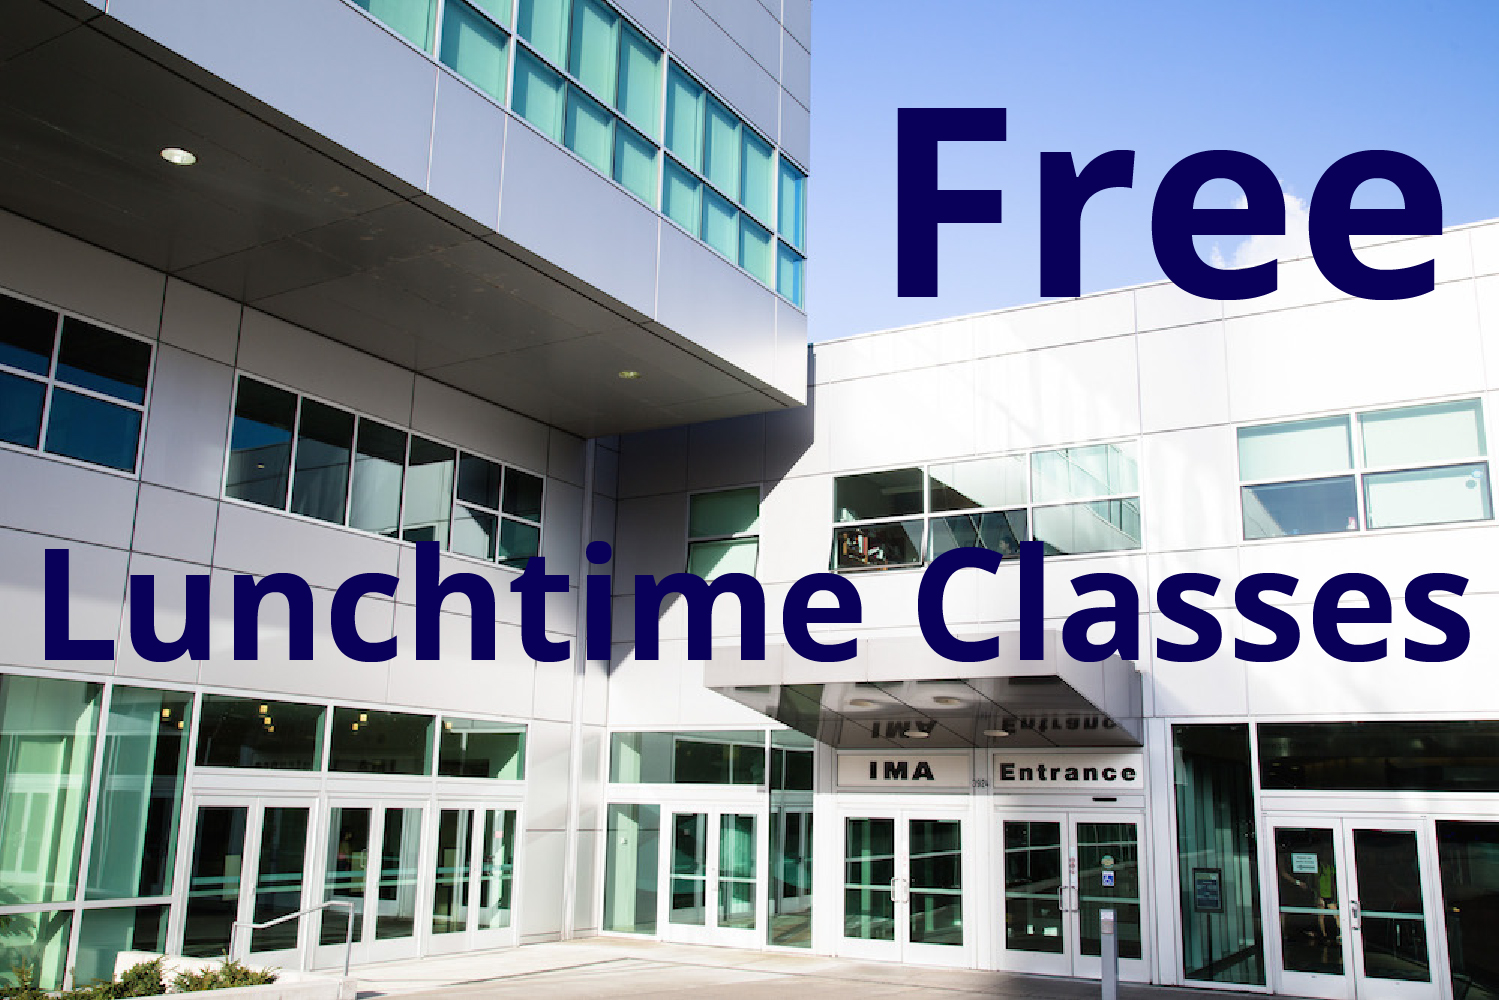 Free lunchtime classes at IMA